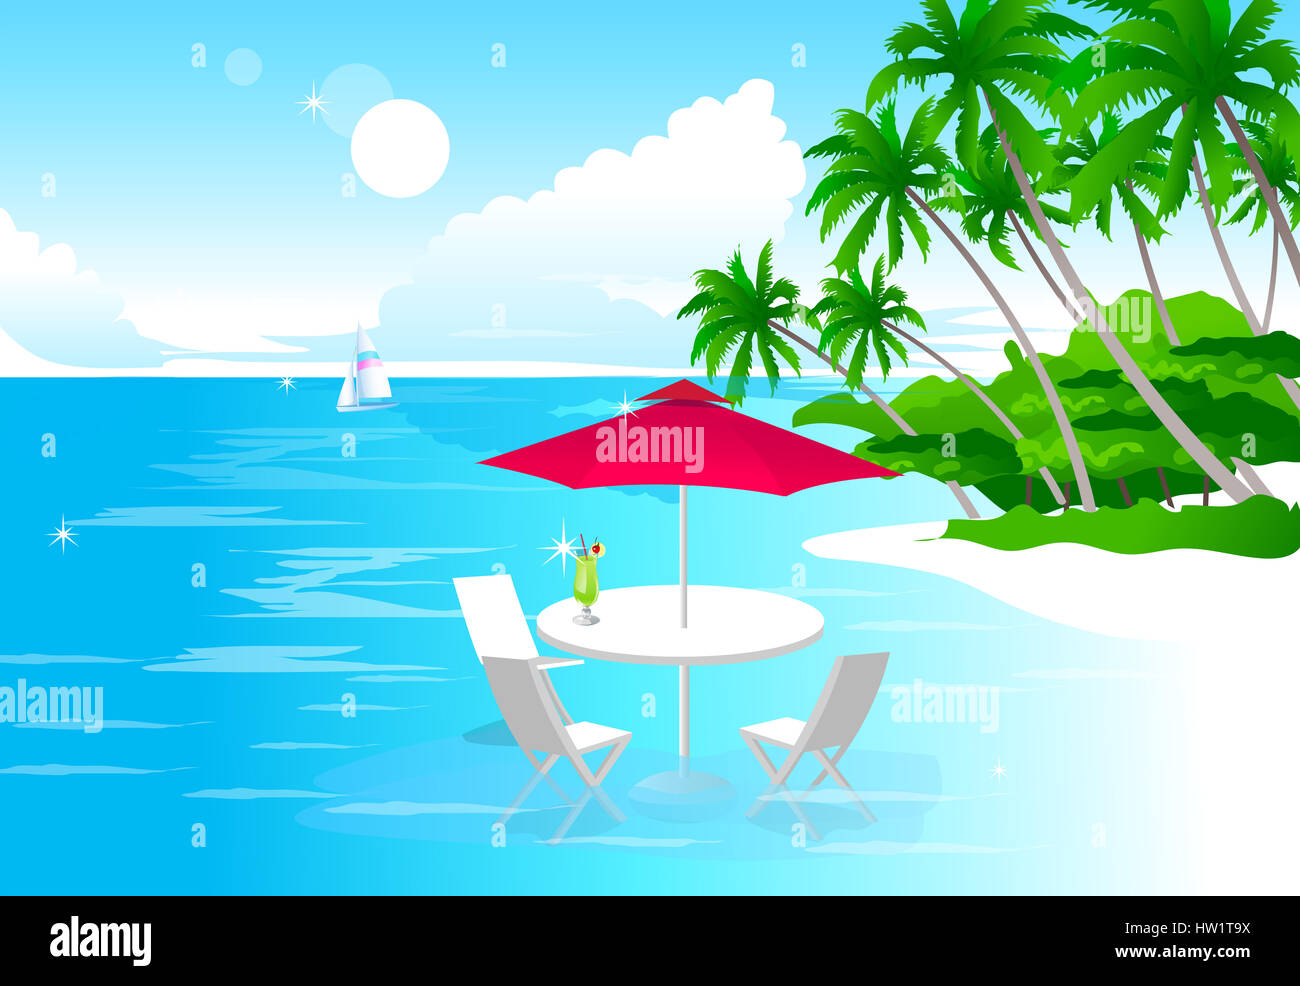 beach chair and umbrella clipart folding kuwait absence stock photo 135880022 alamy cloud color colour image computer graphics day digitally generated glass horizon over